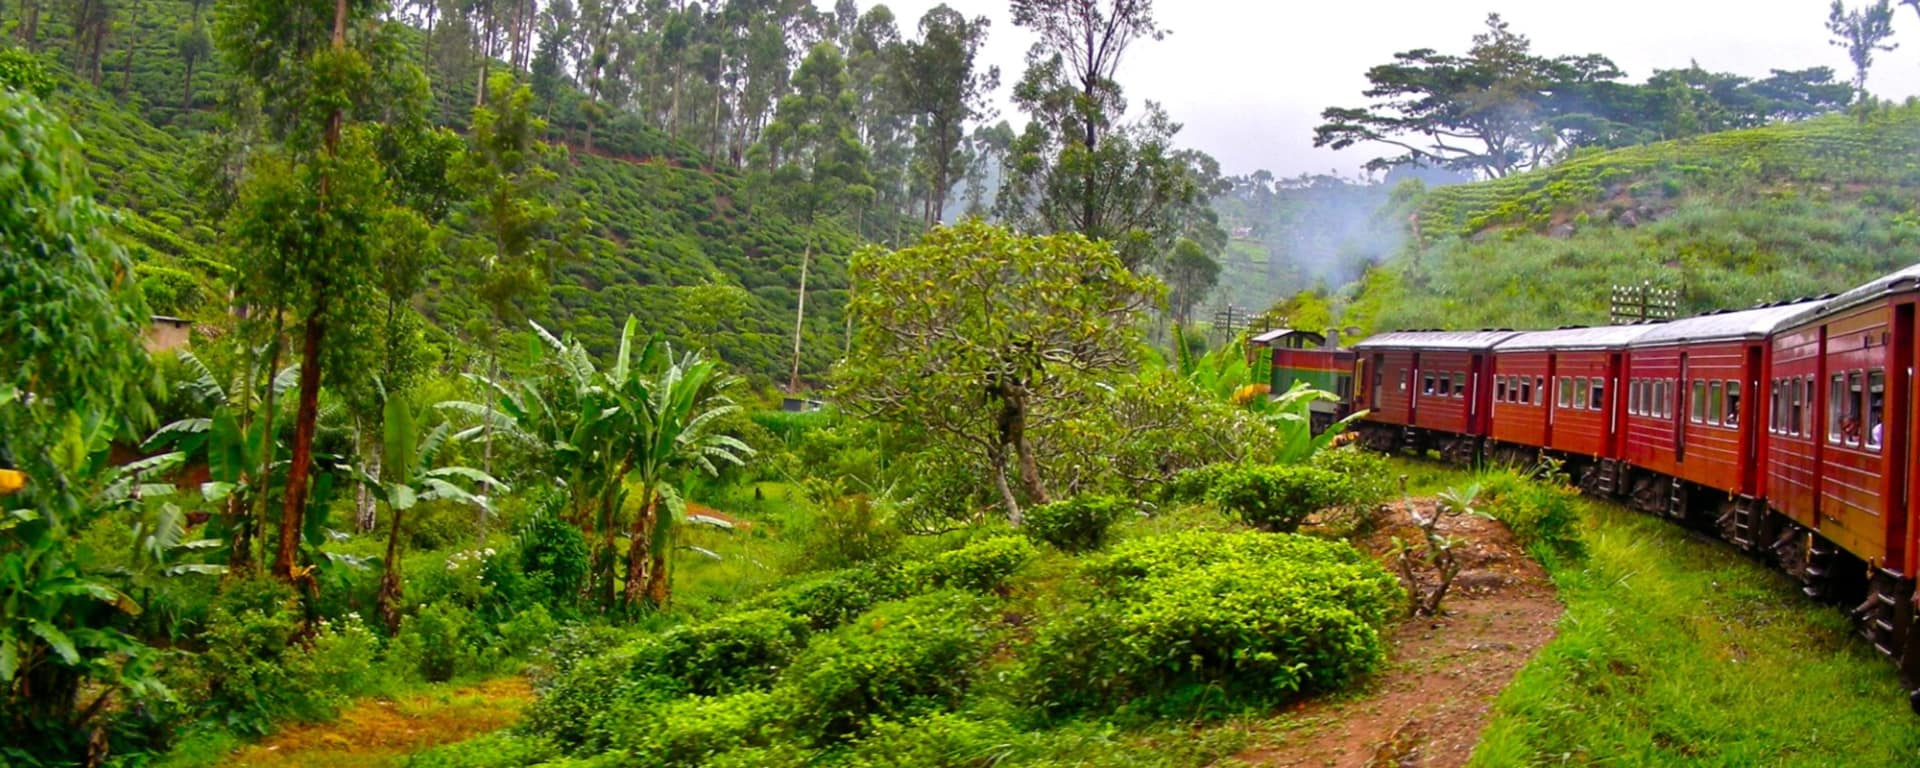 Sri Lanka Reisen und Ferien von tourasia: Nuwara Eliya train ride